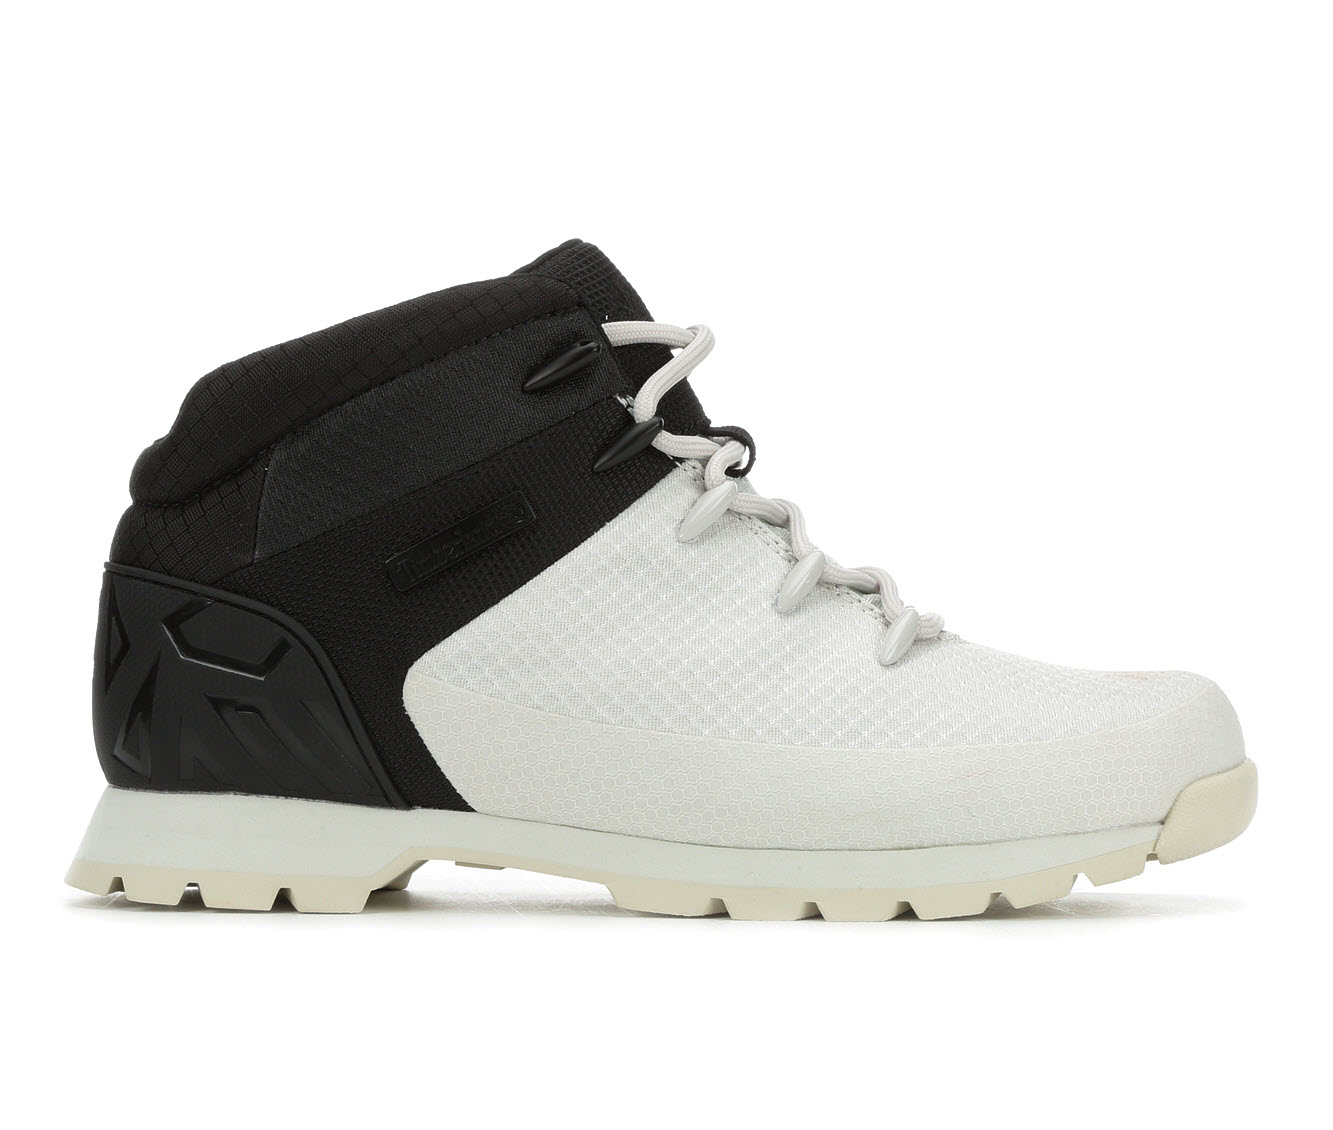 Timberland Euro Sprint Hiker Men's Boots (White Faux Leather)